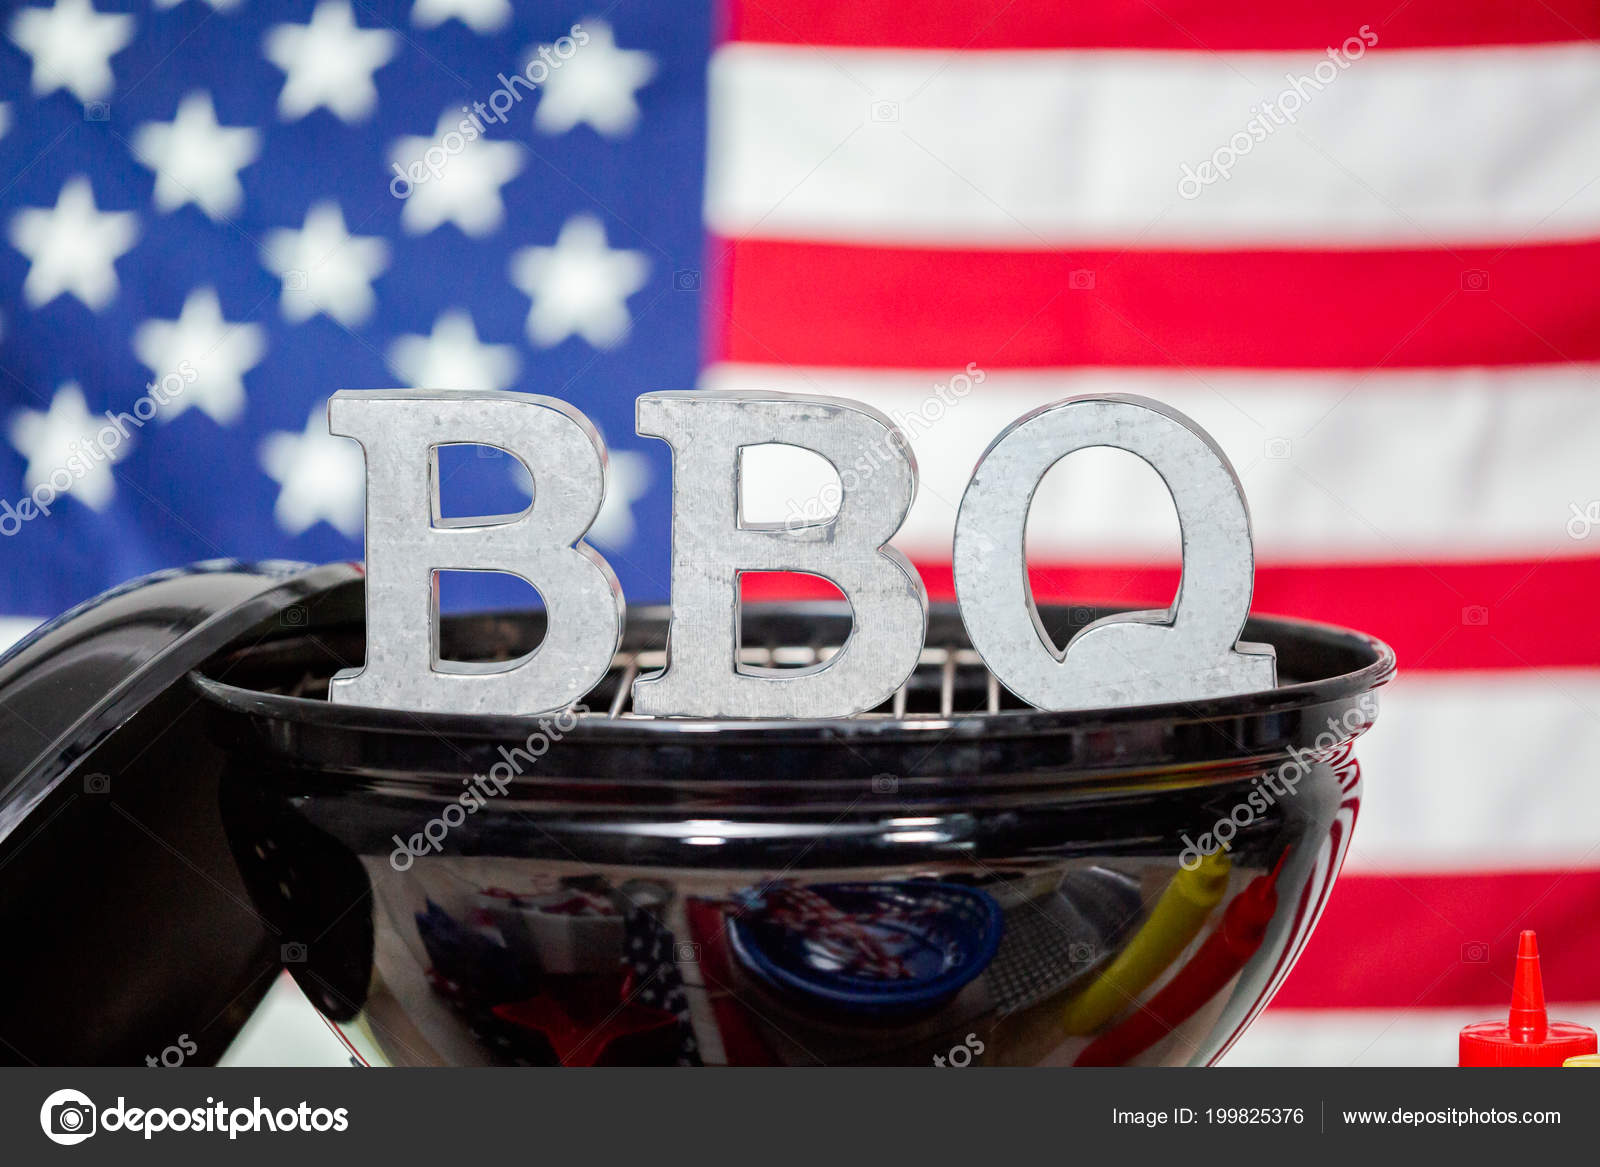 Metal Bbq Sign On Small Round Charcoal Grill With July 4th Decorations Photo By Urban Light